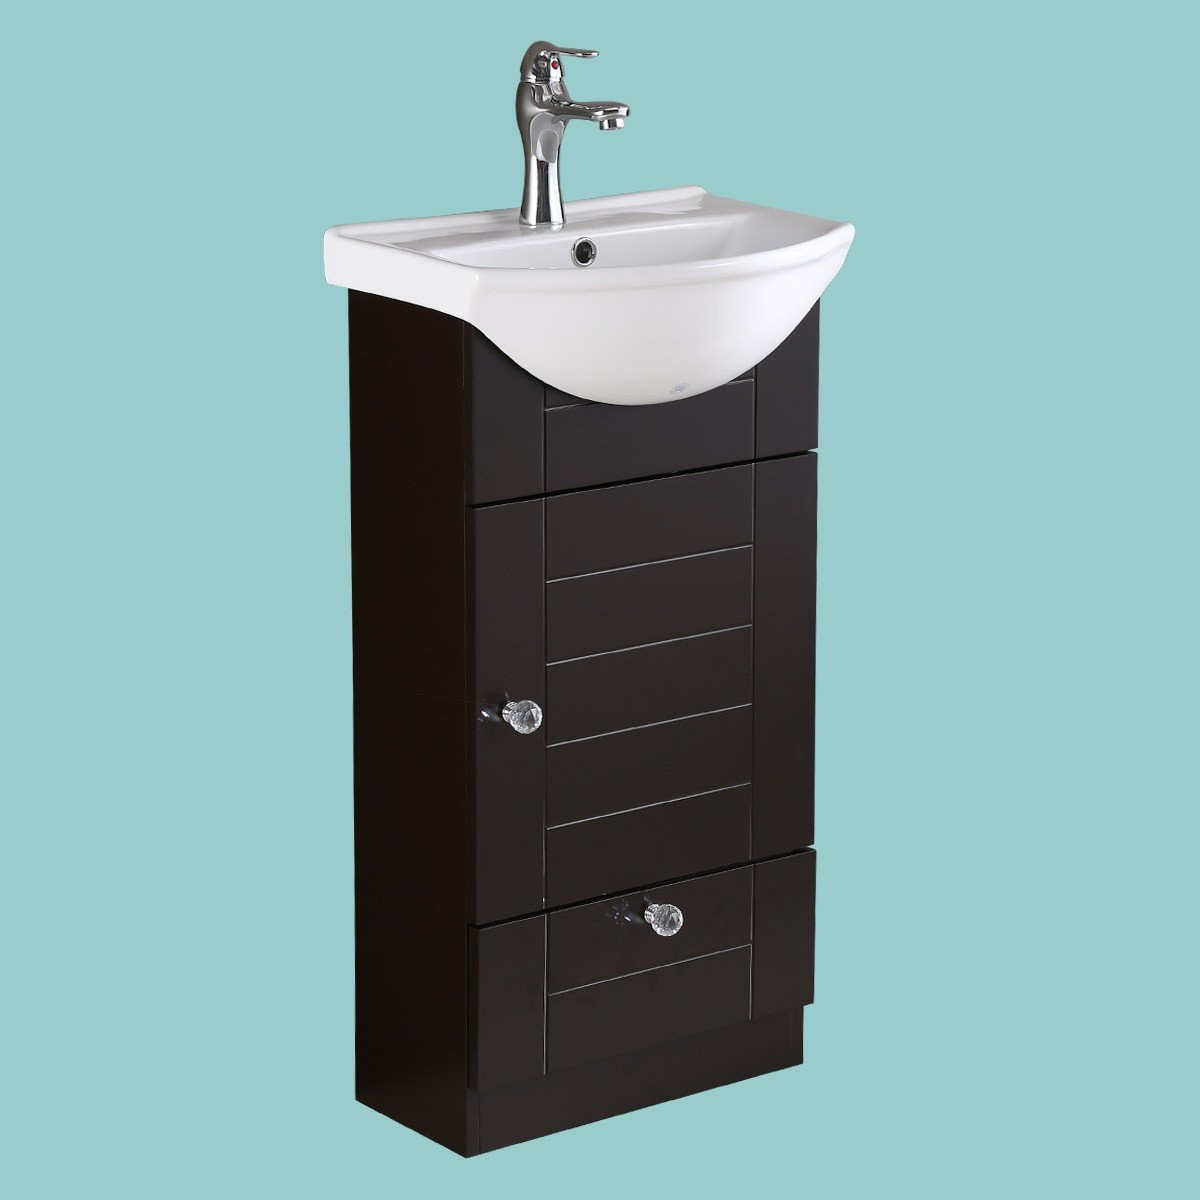 Small Black Cabinet Vanity Bathroom Sink White Grade A Vitreous ...